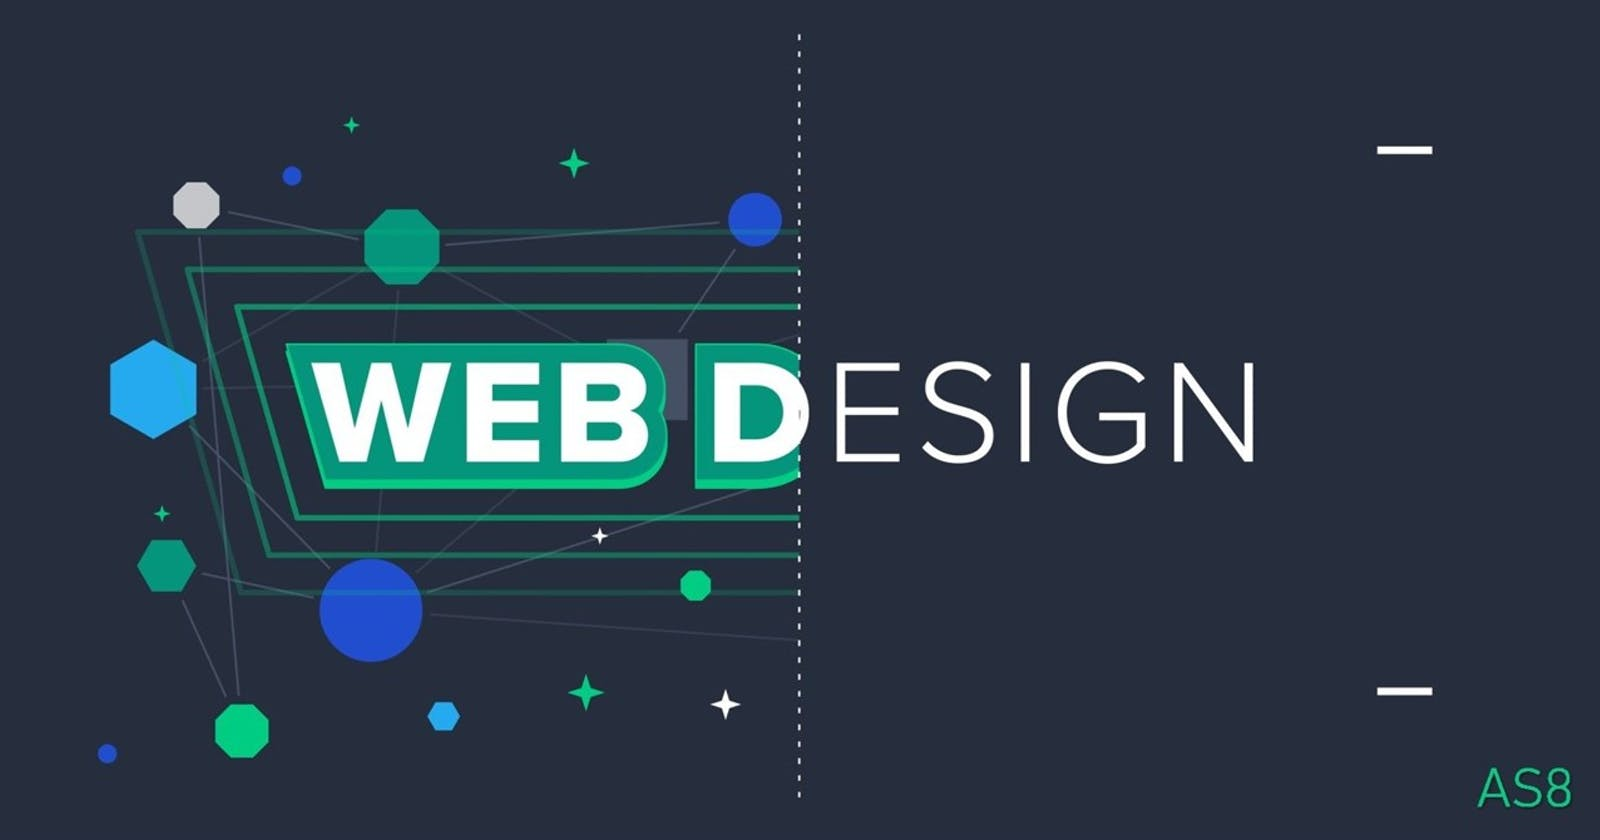 How to Use Basic Web Design Principles to Make Your Site Beautiful